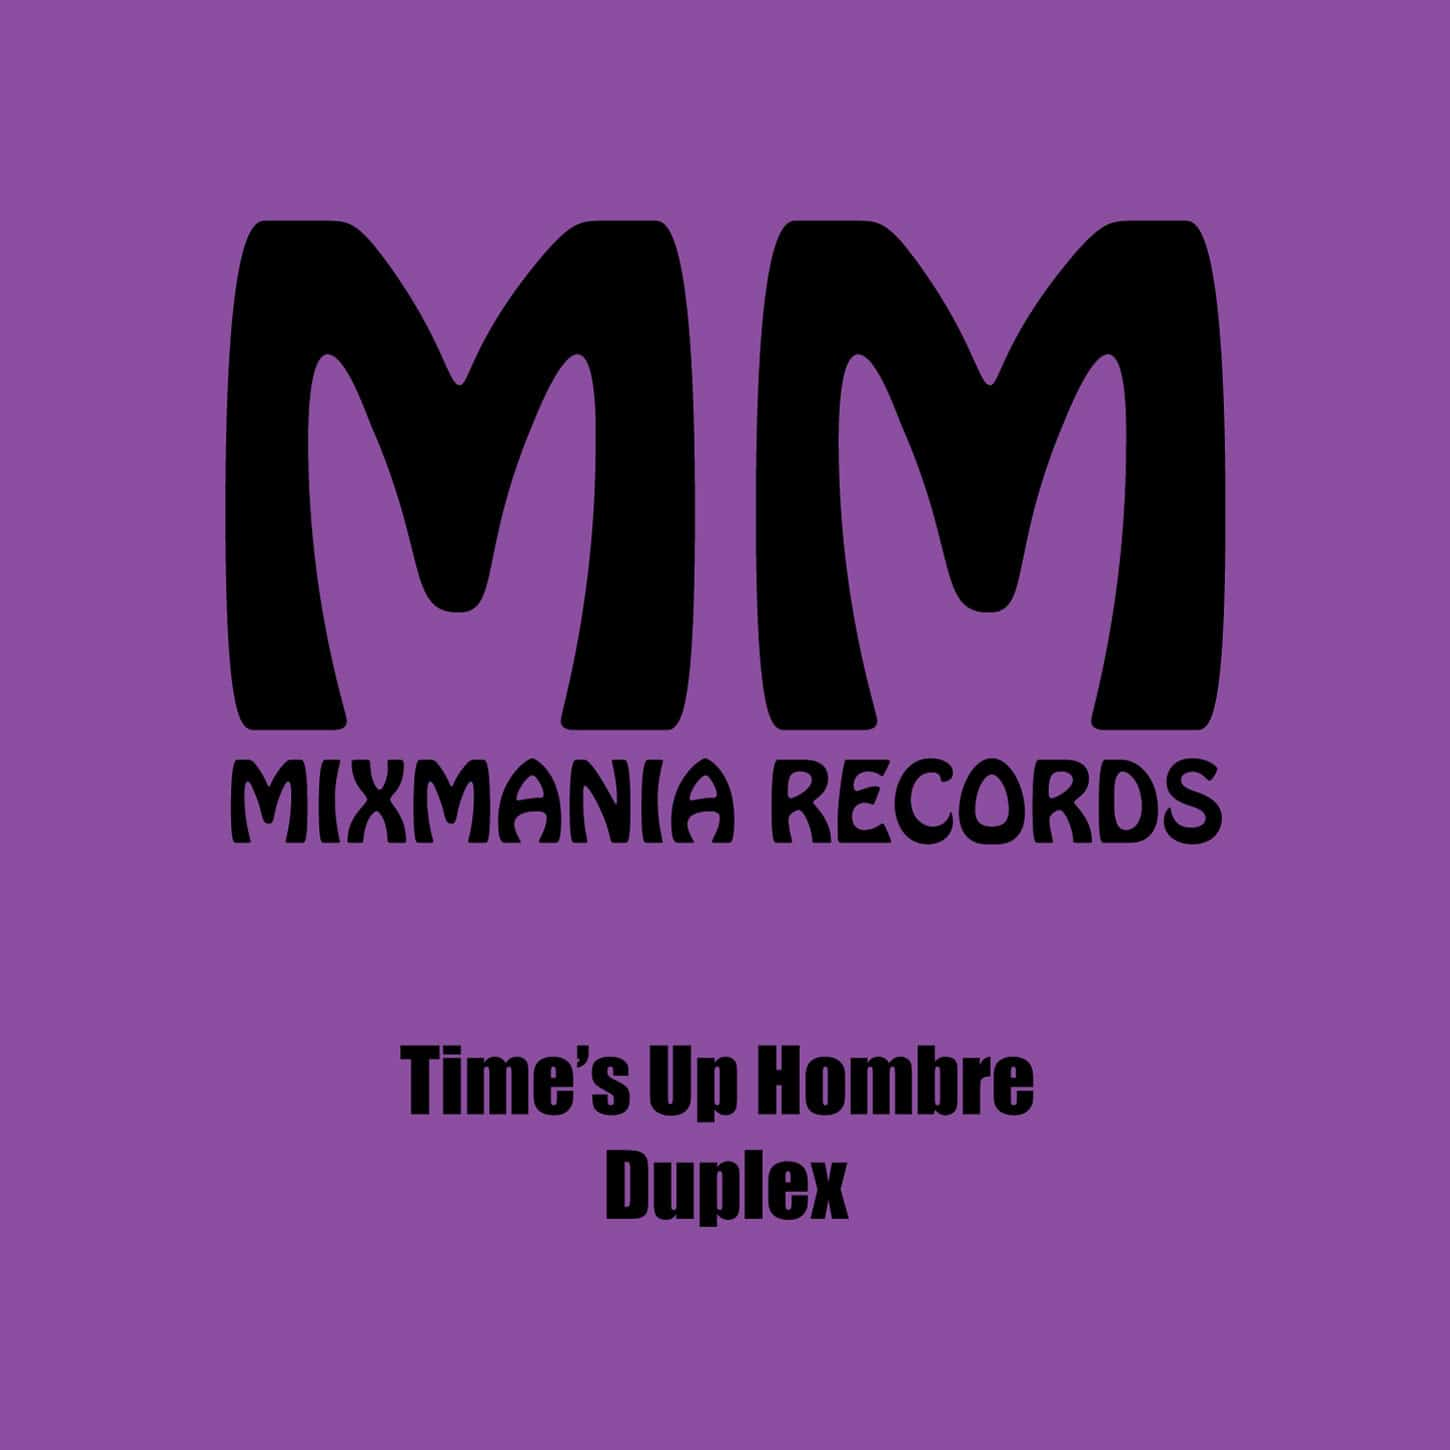 Times Up Hombre (Original Mix) By Duplex Art Work